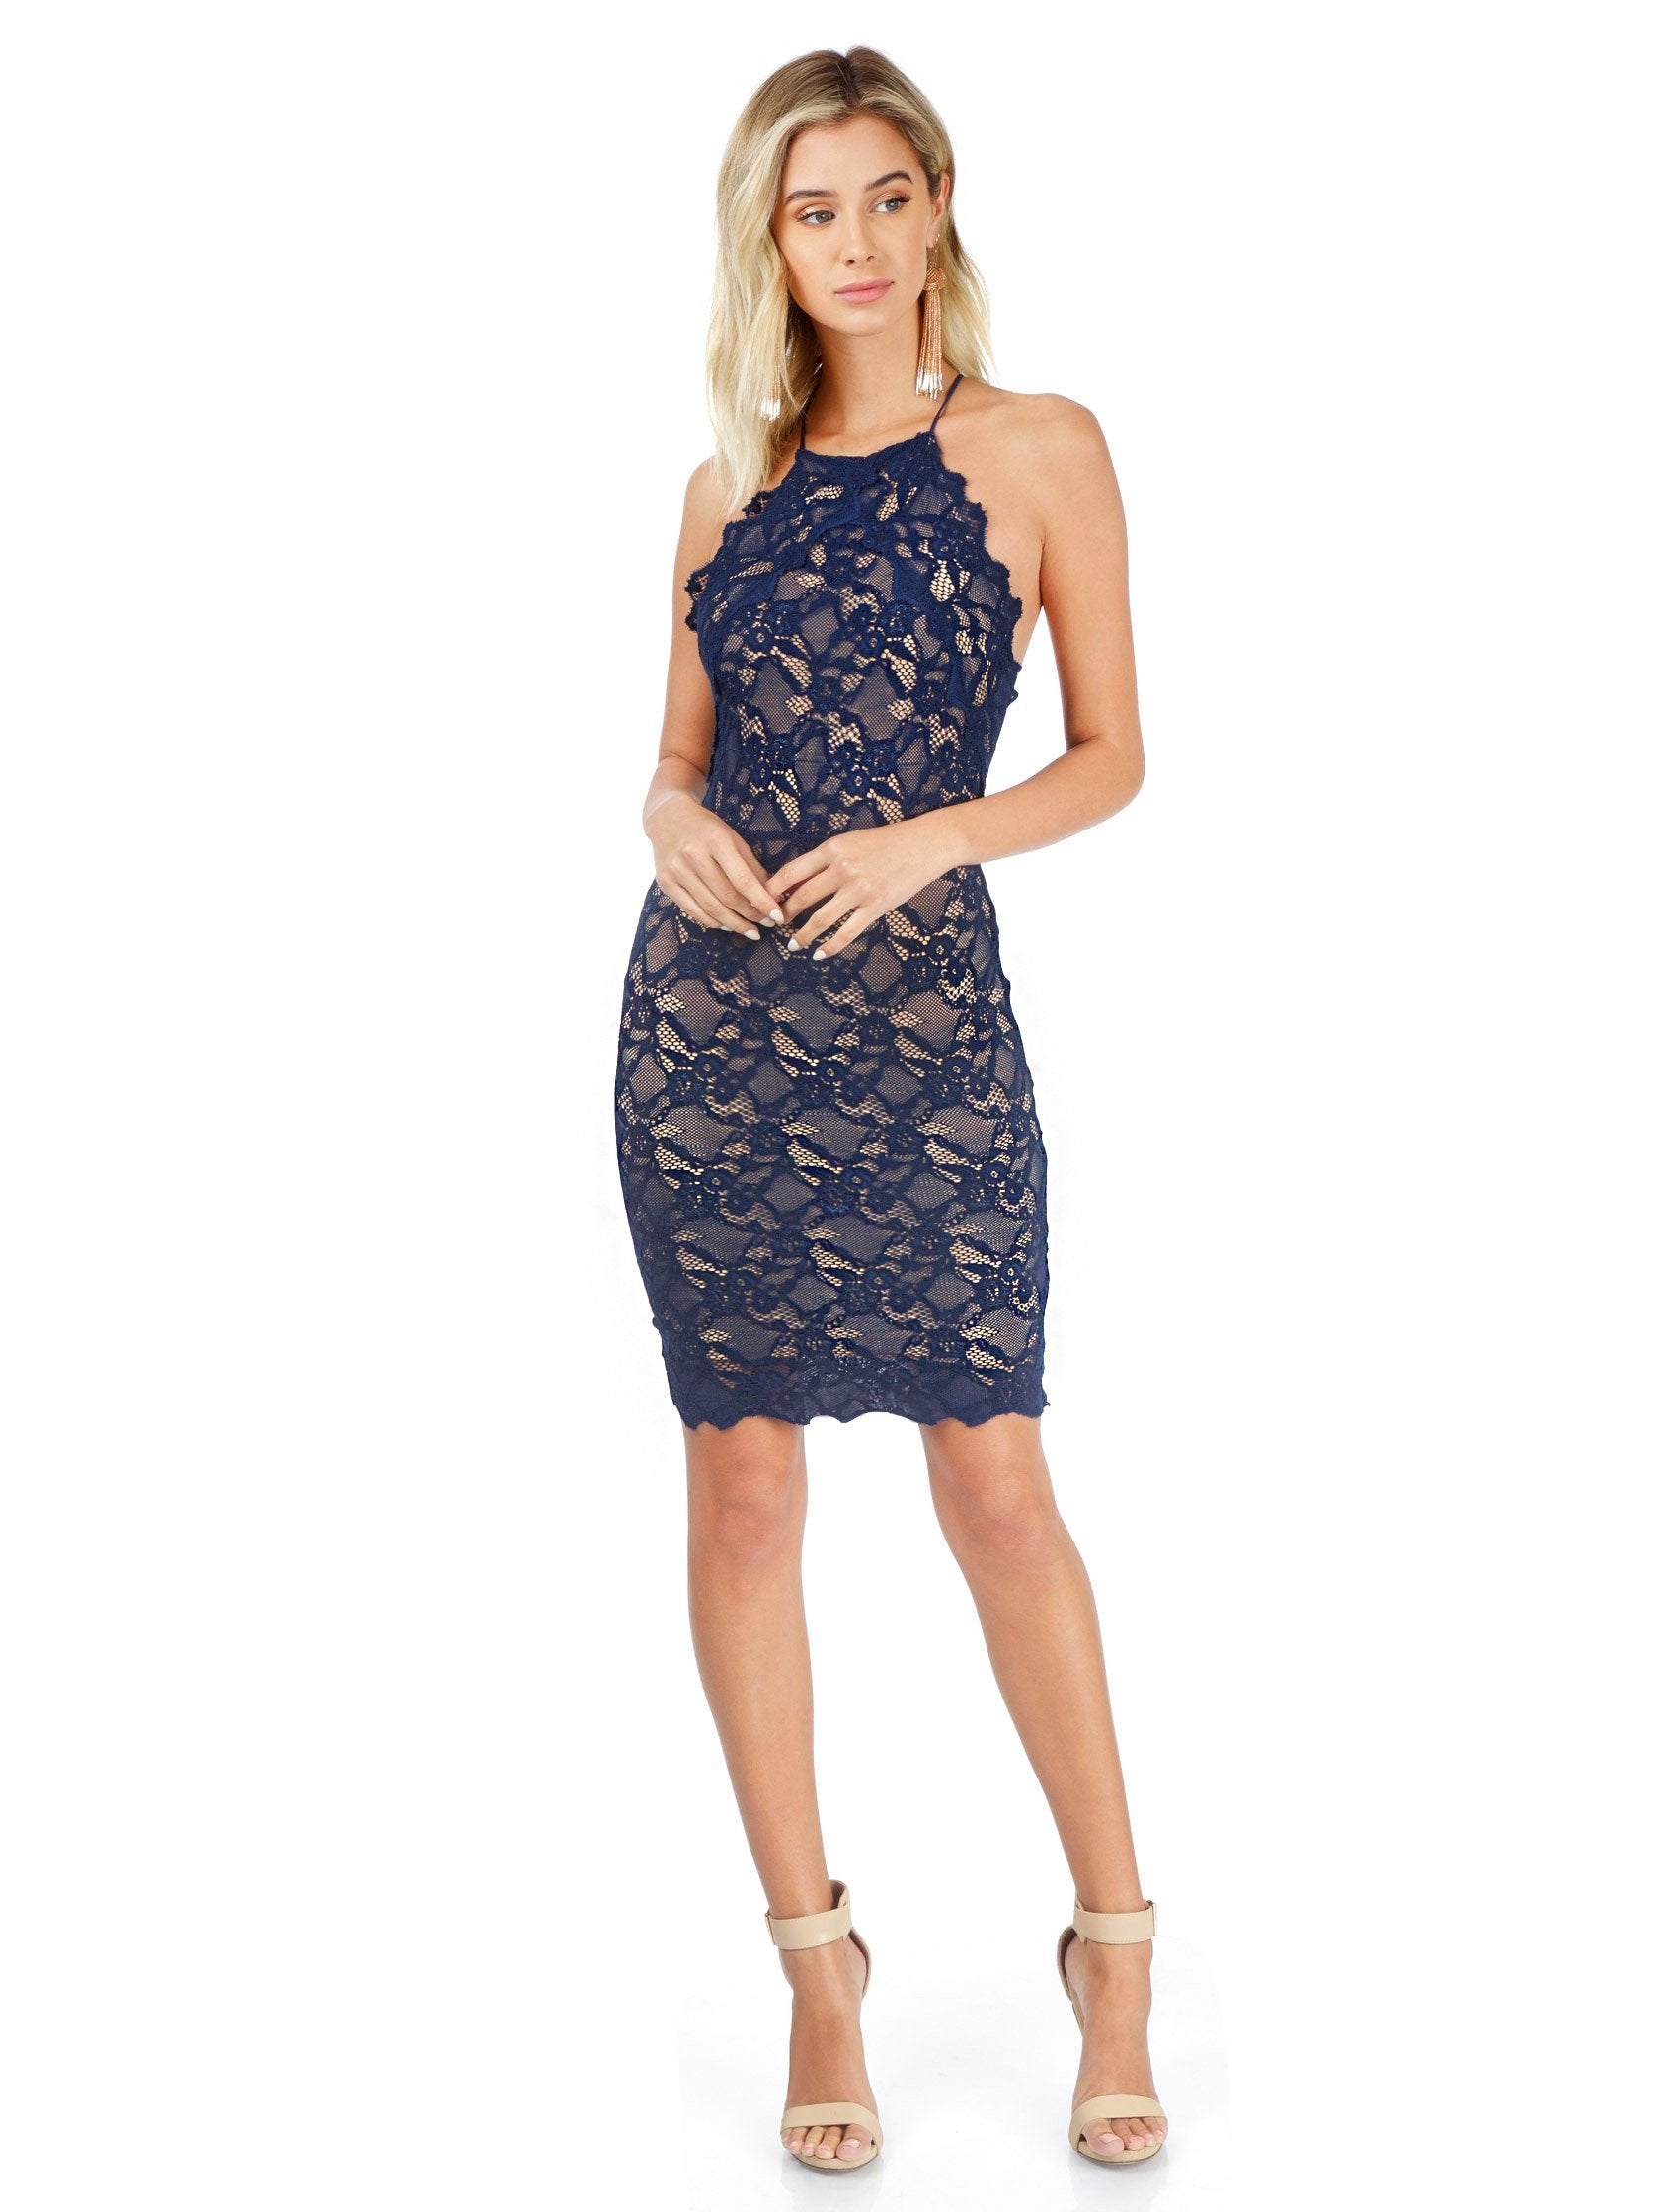 Women outfit in a dress rental from Nightcap Clothing called Navy Drive Me Home Mini Dress